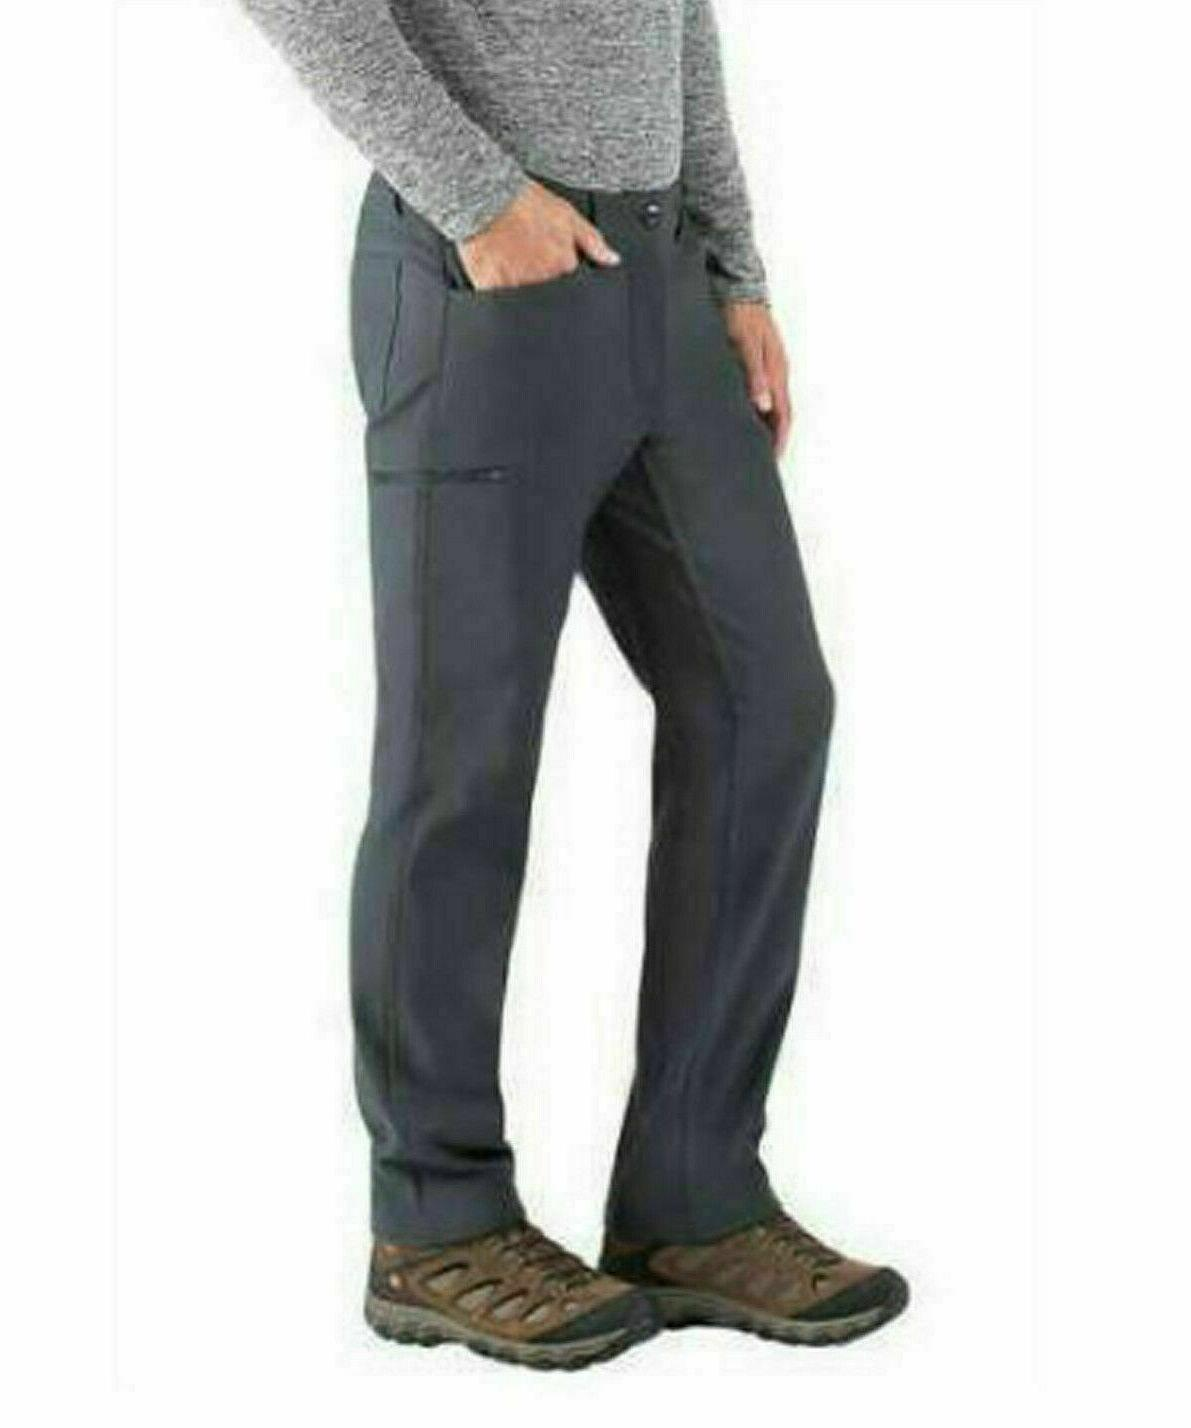 NEW! Clothing Outdoor Lined Pants - VARIETY